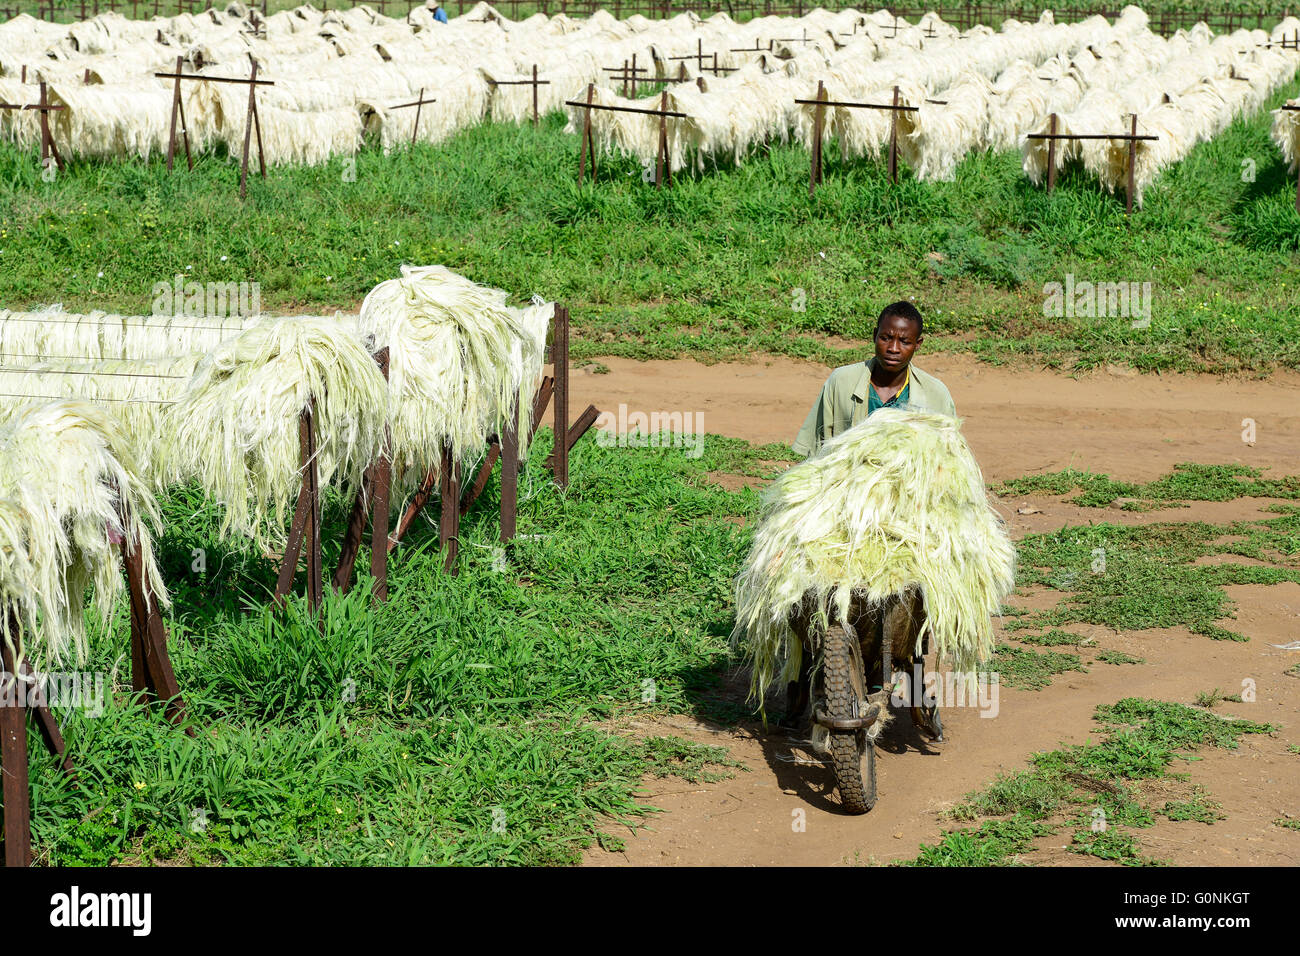 TANZANIA Tanga, Usambara Mountains, Sisal farming and industry, D.D. Ruhinda & Company Ltd., Mkumbara Sisal estate, Stock Photo